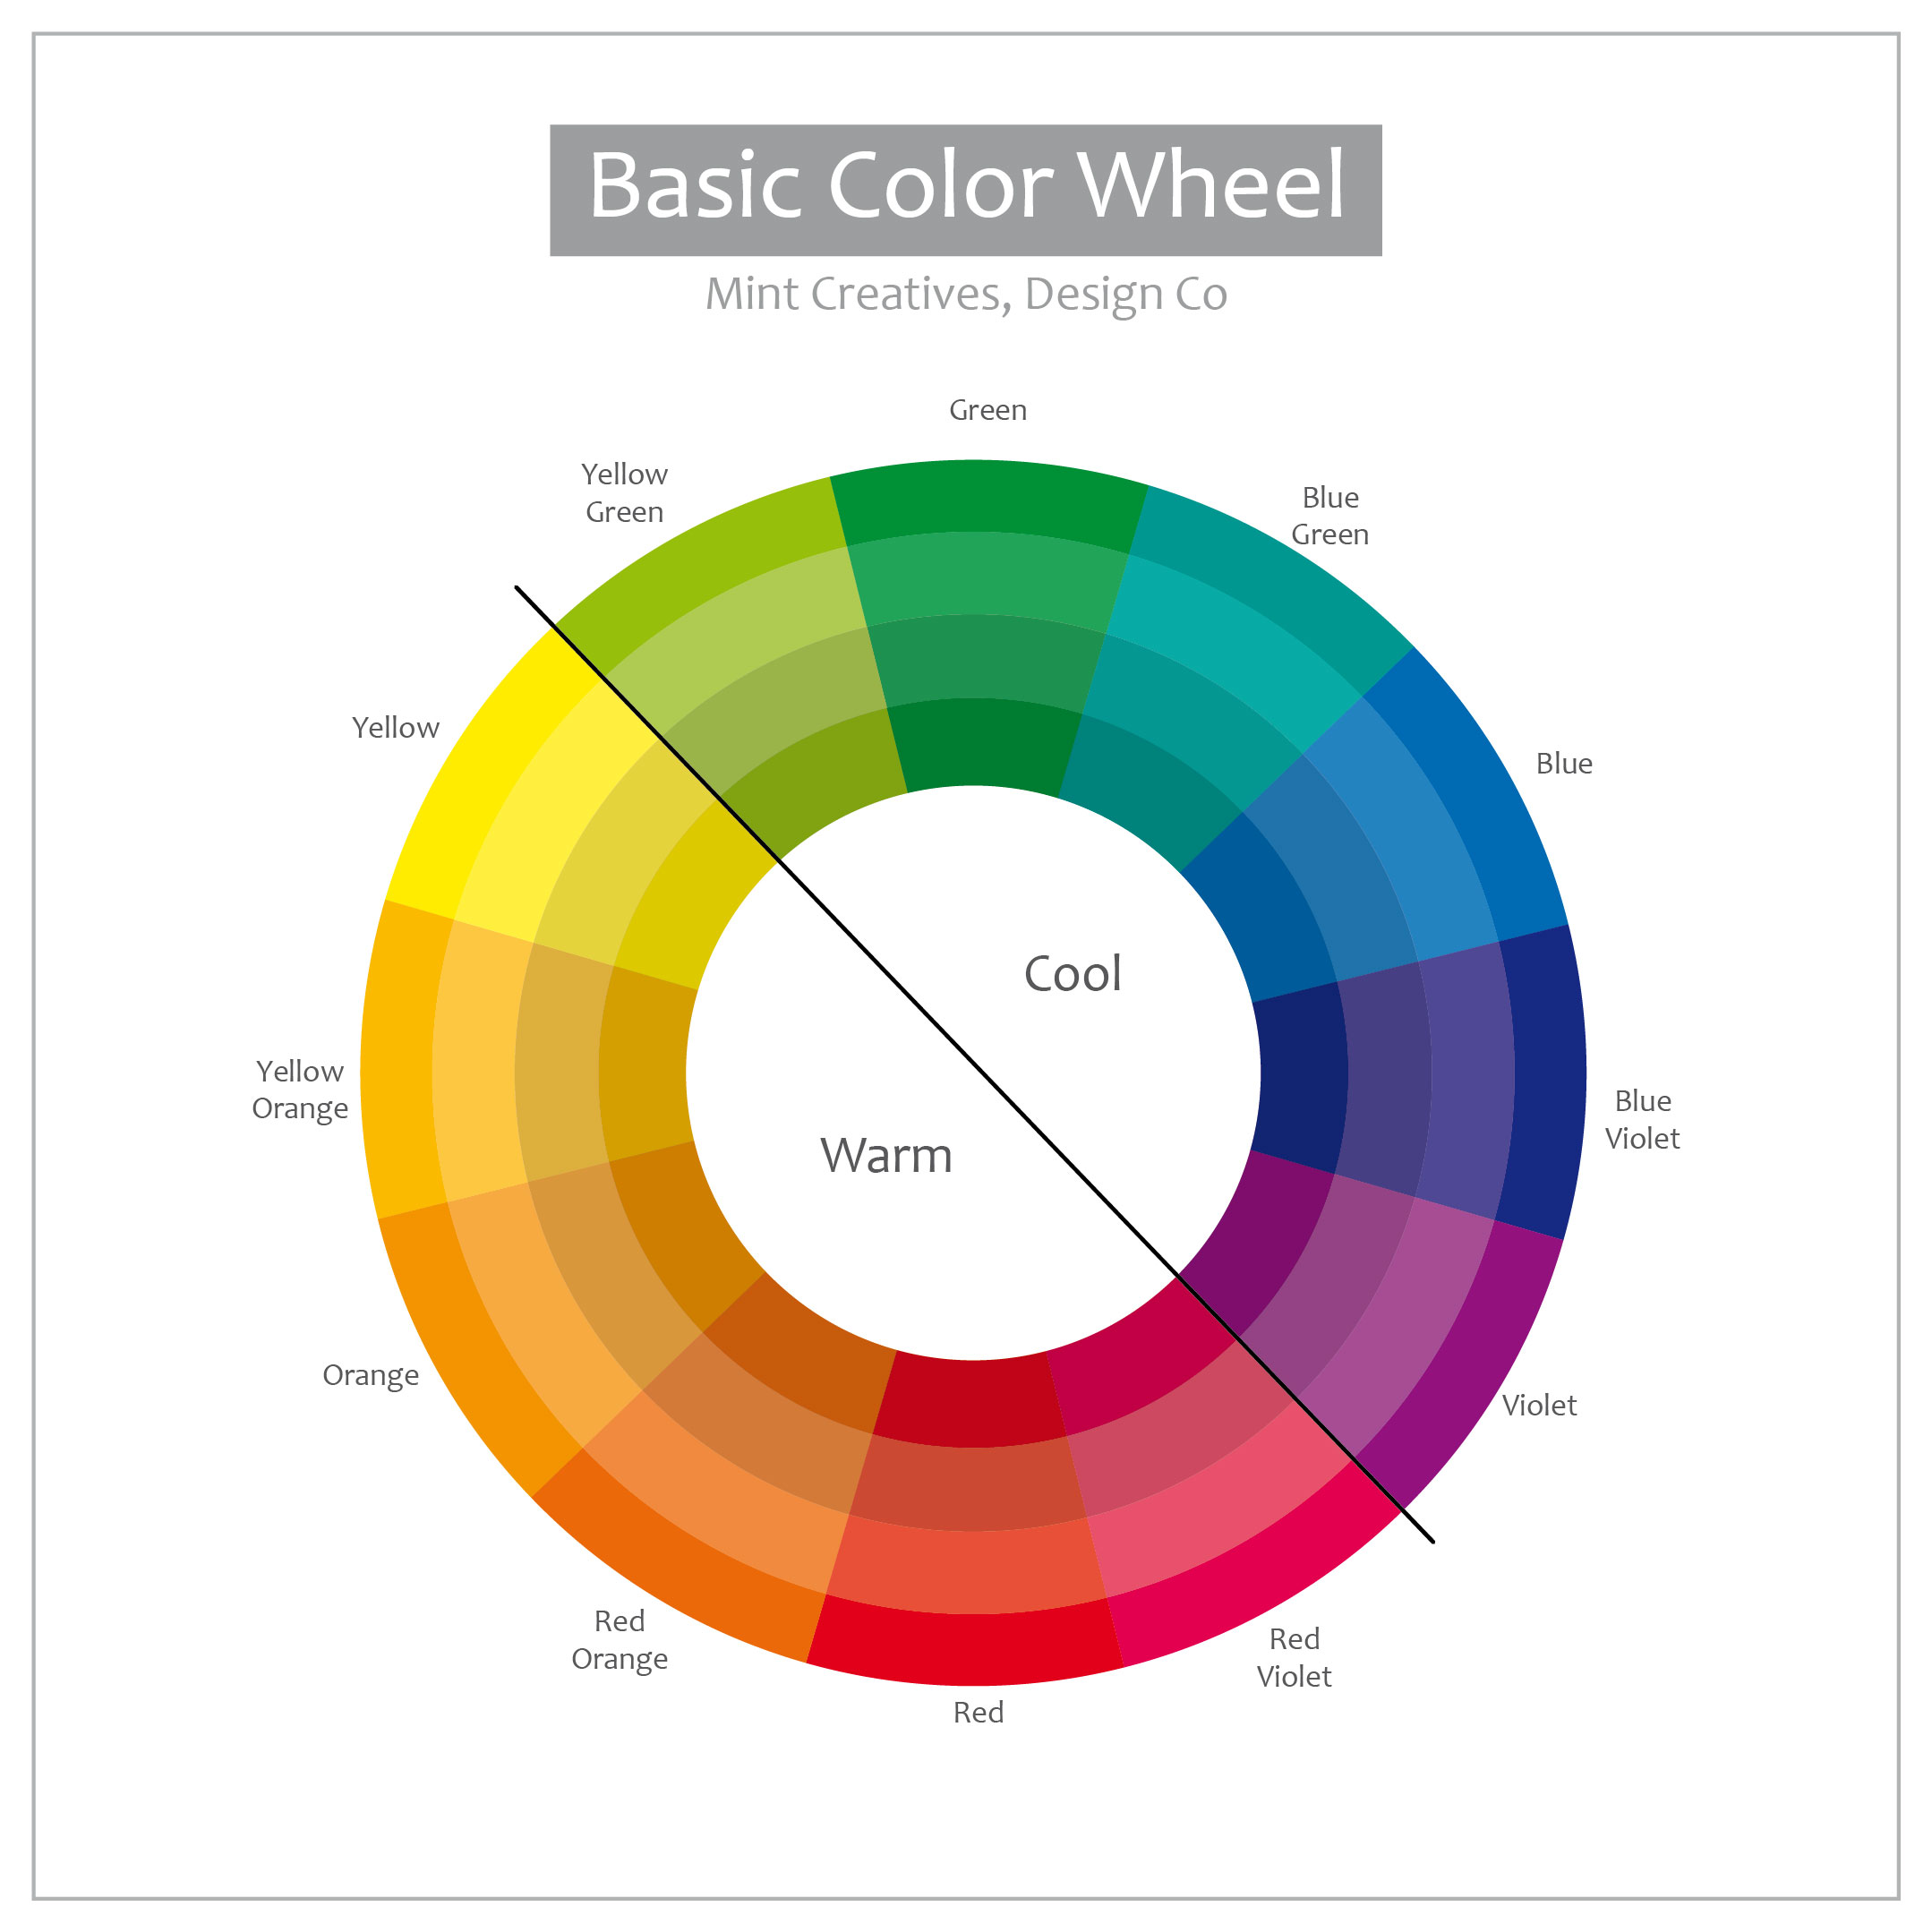 The Color Wheel Mint Creatives Design Co